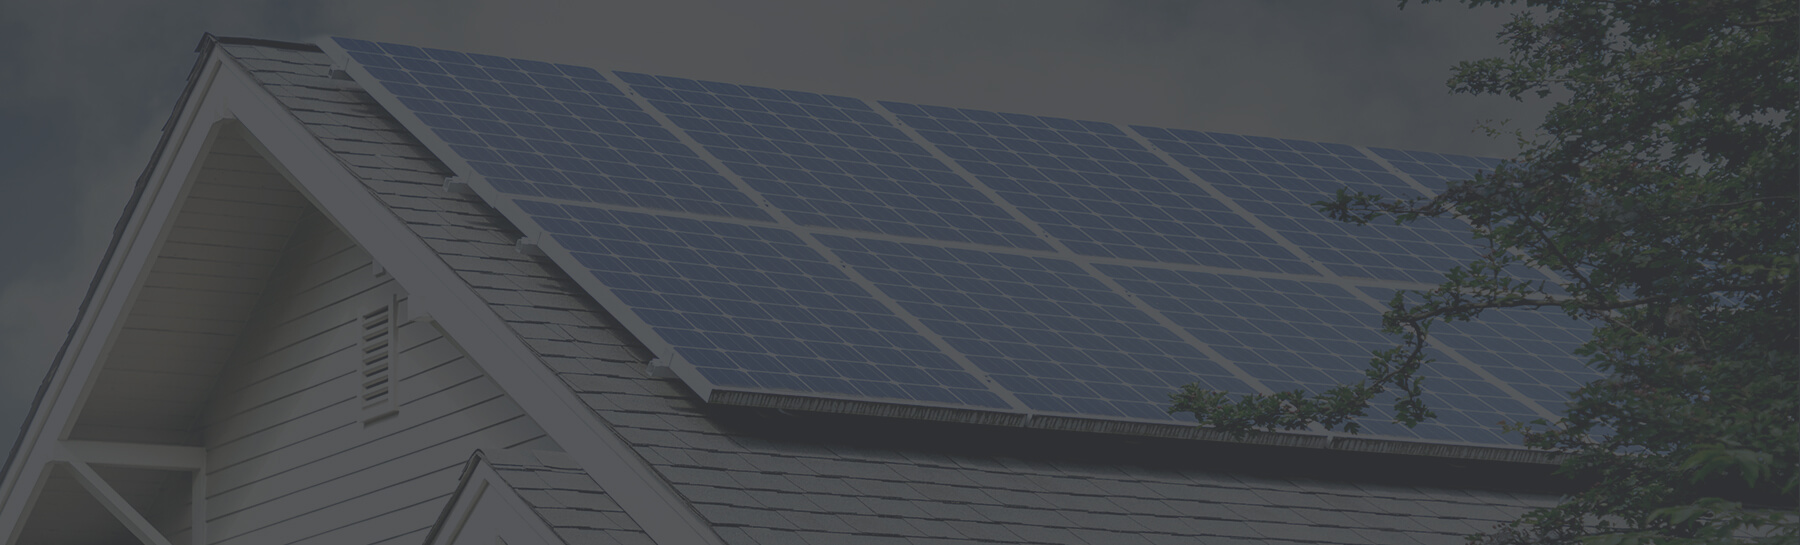 Homeowners Insurance And Solar Panels The Zebra